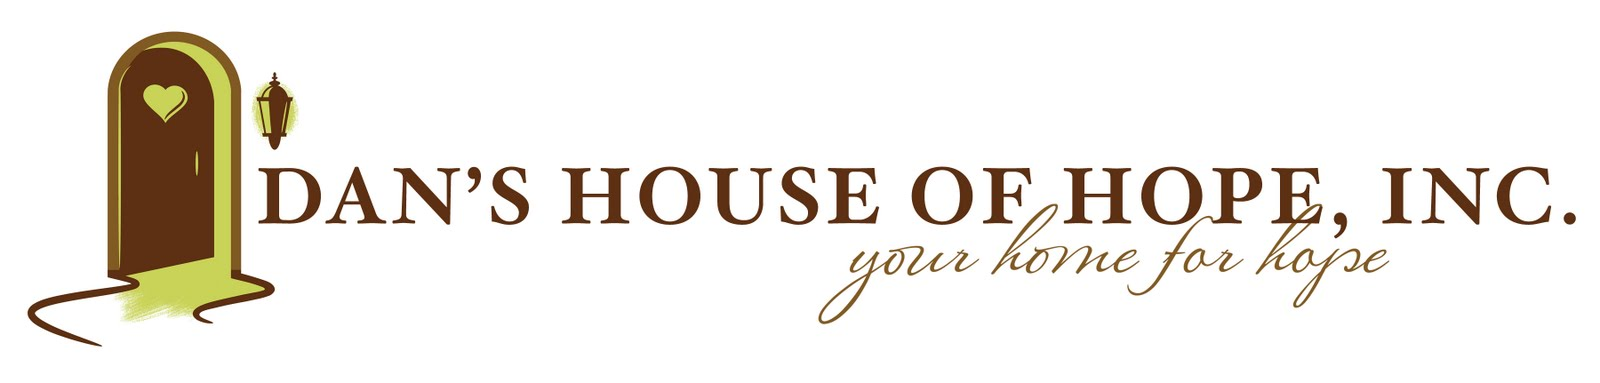 Dan's House of Hope